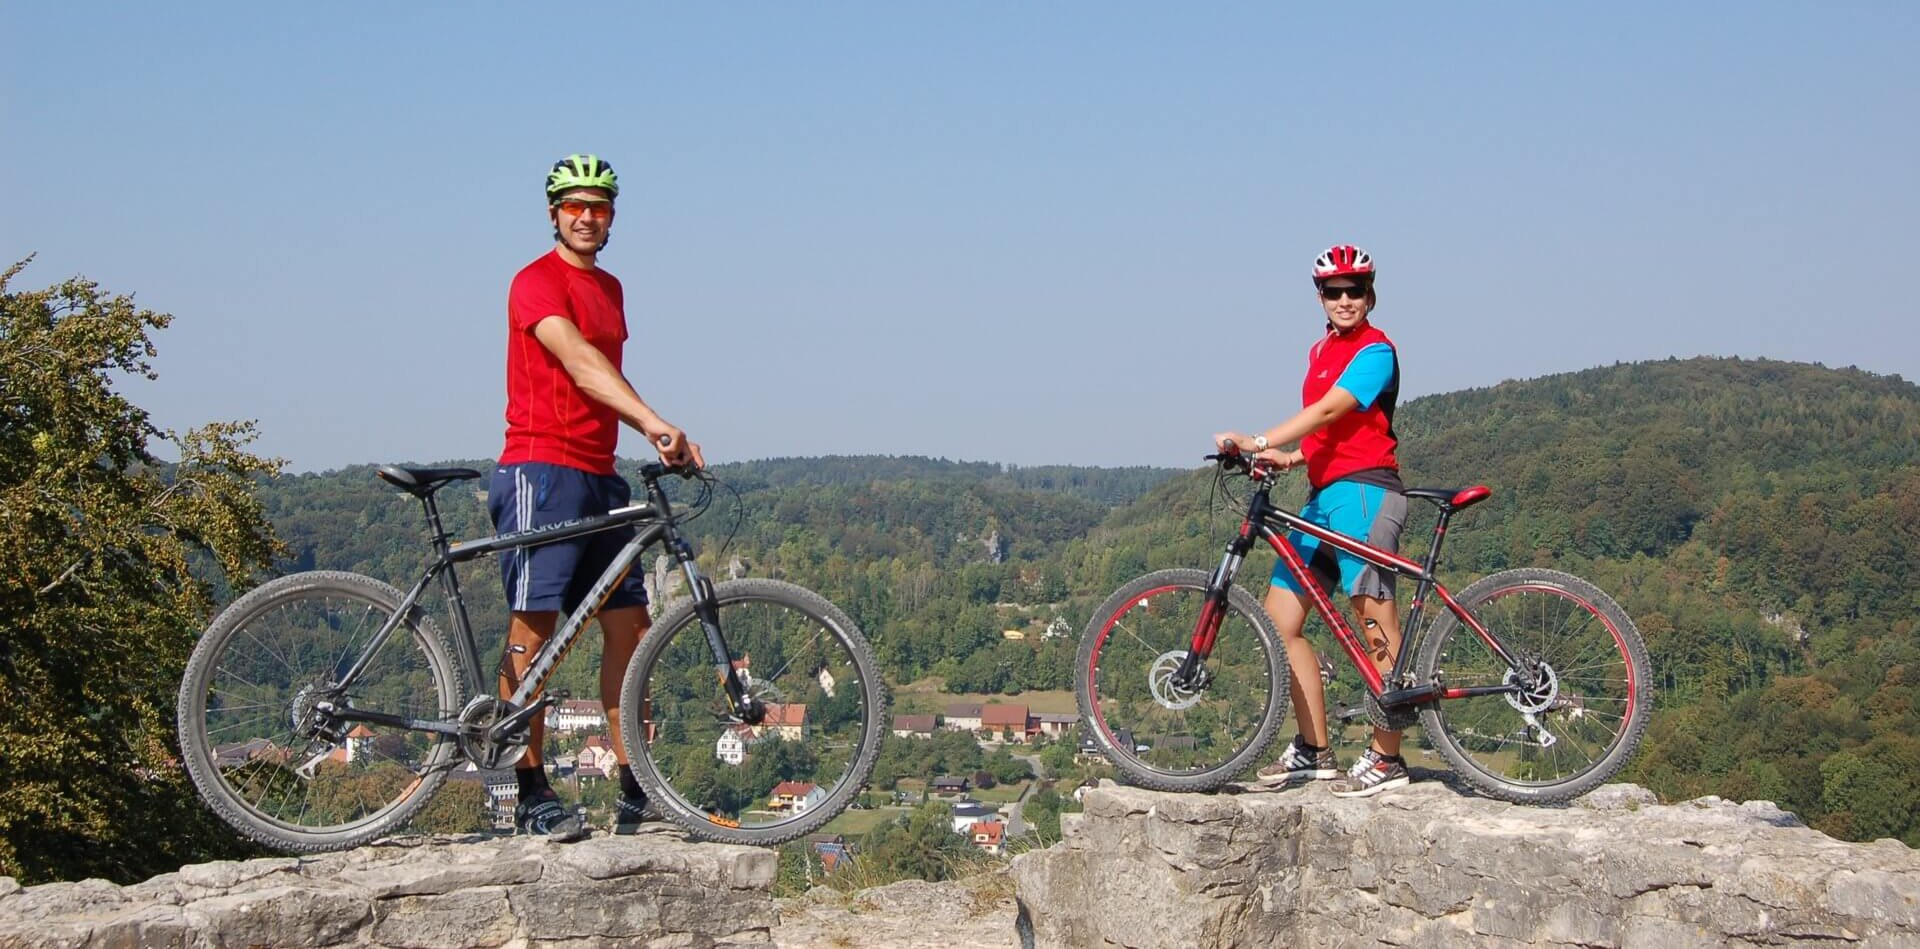 Rent a mountain bike and enjoy the panorama view in 'Franconian Switzerland'...